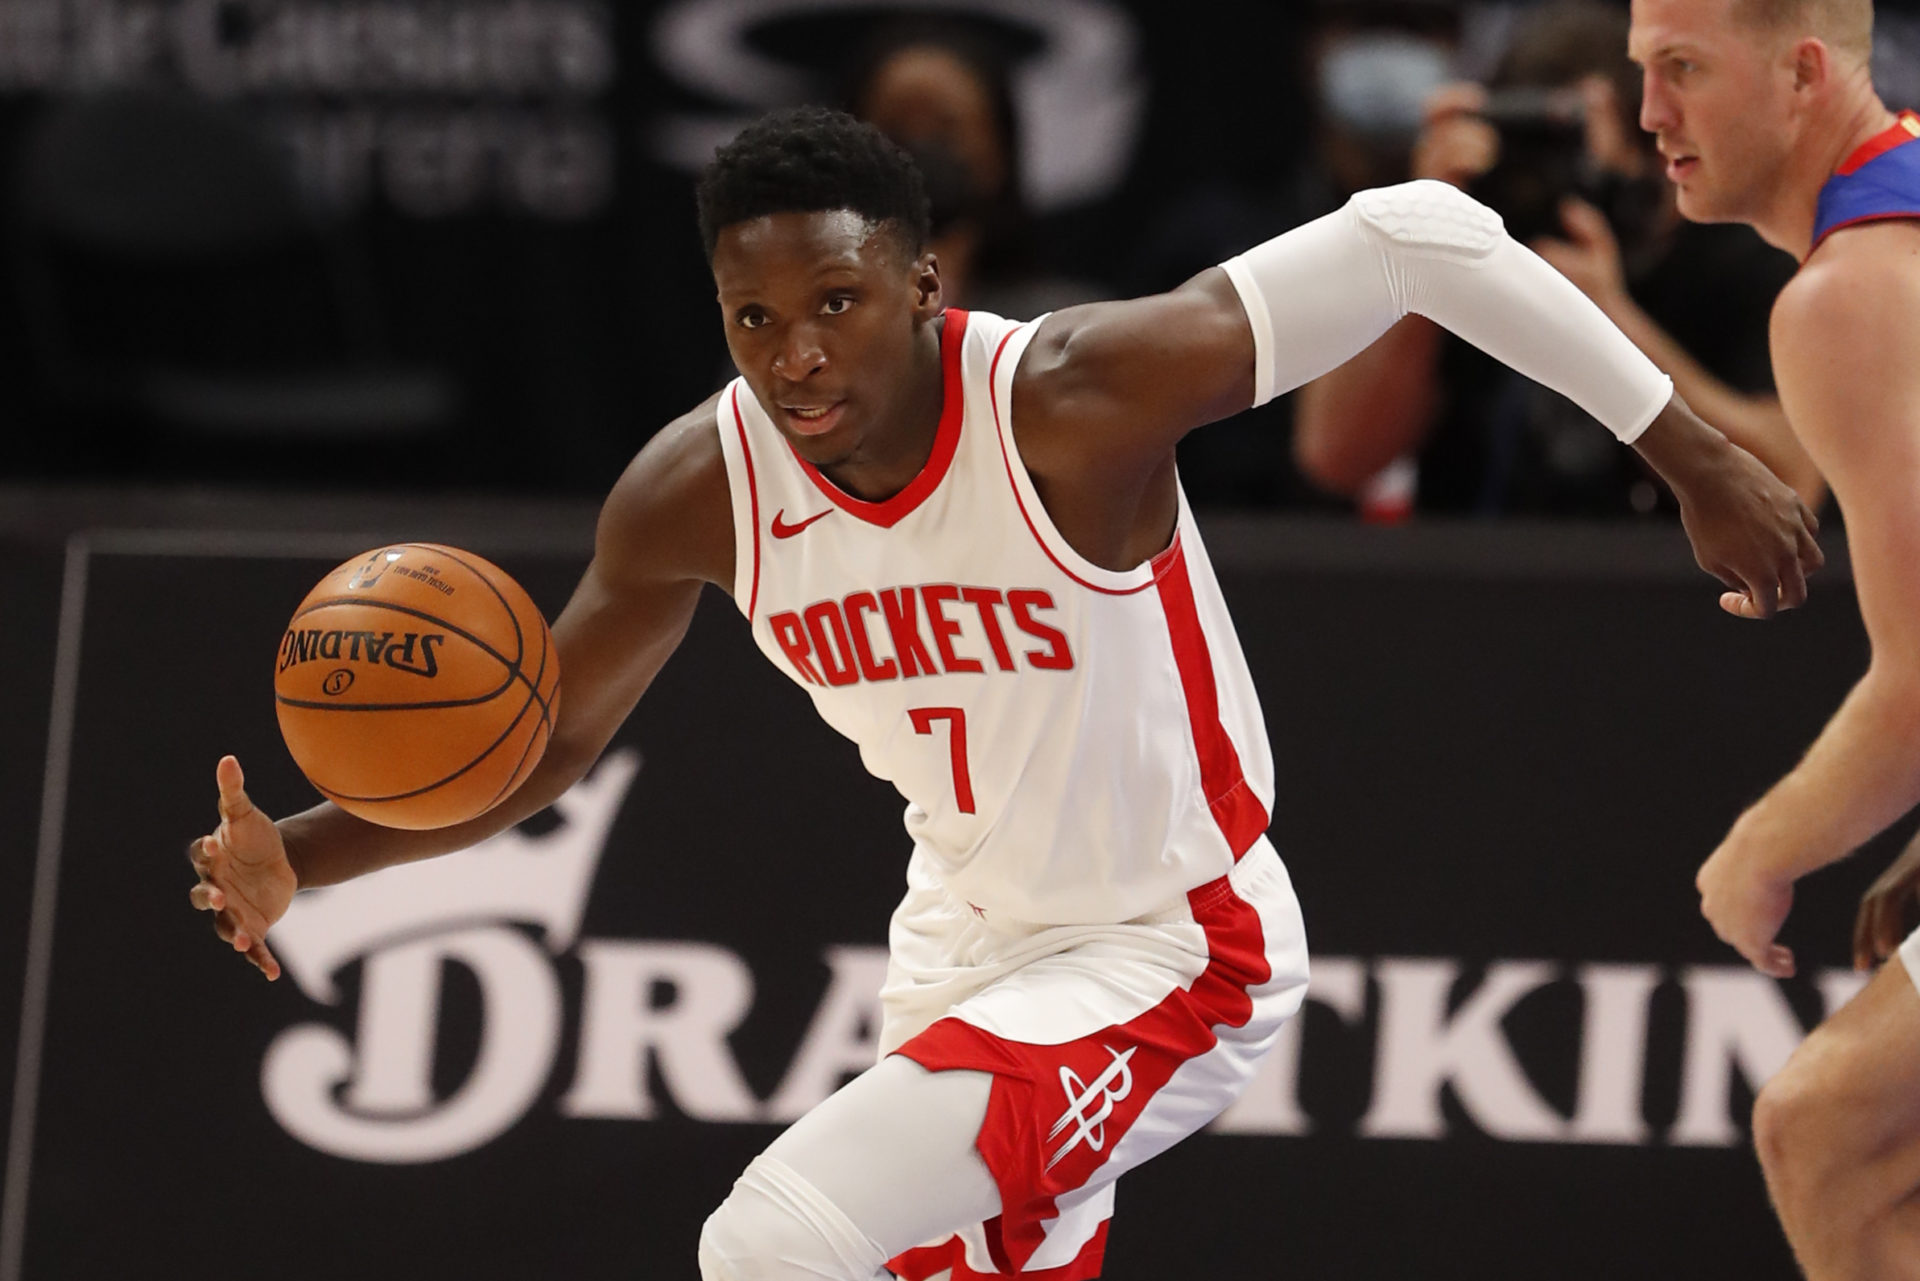 Houston Rockets' Victor Oladipo turned down 2-year, $45.2 million extension